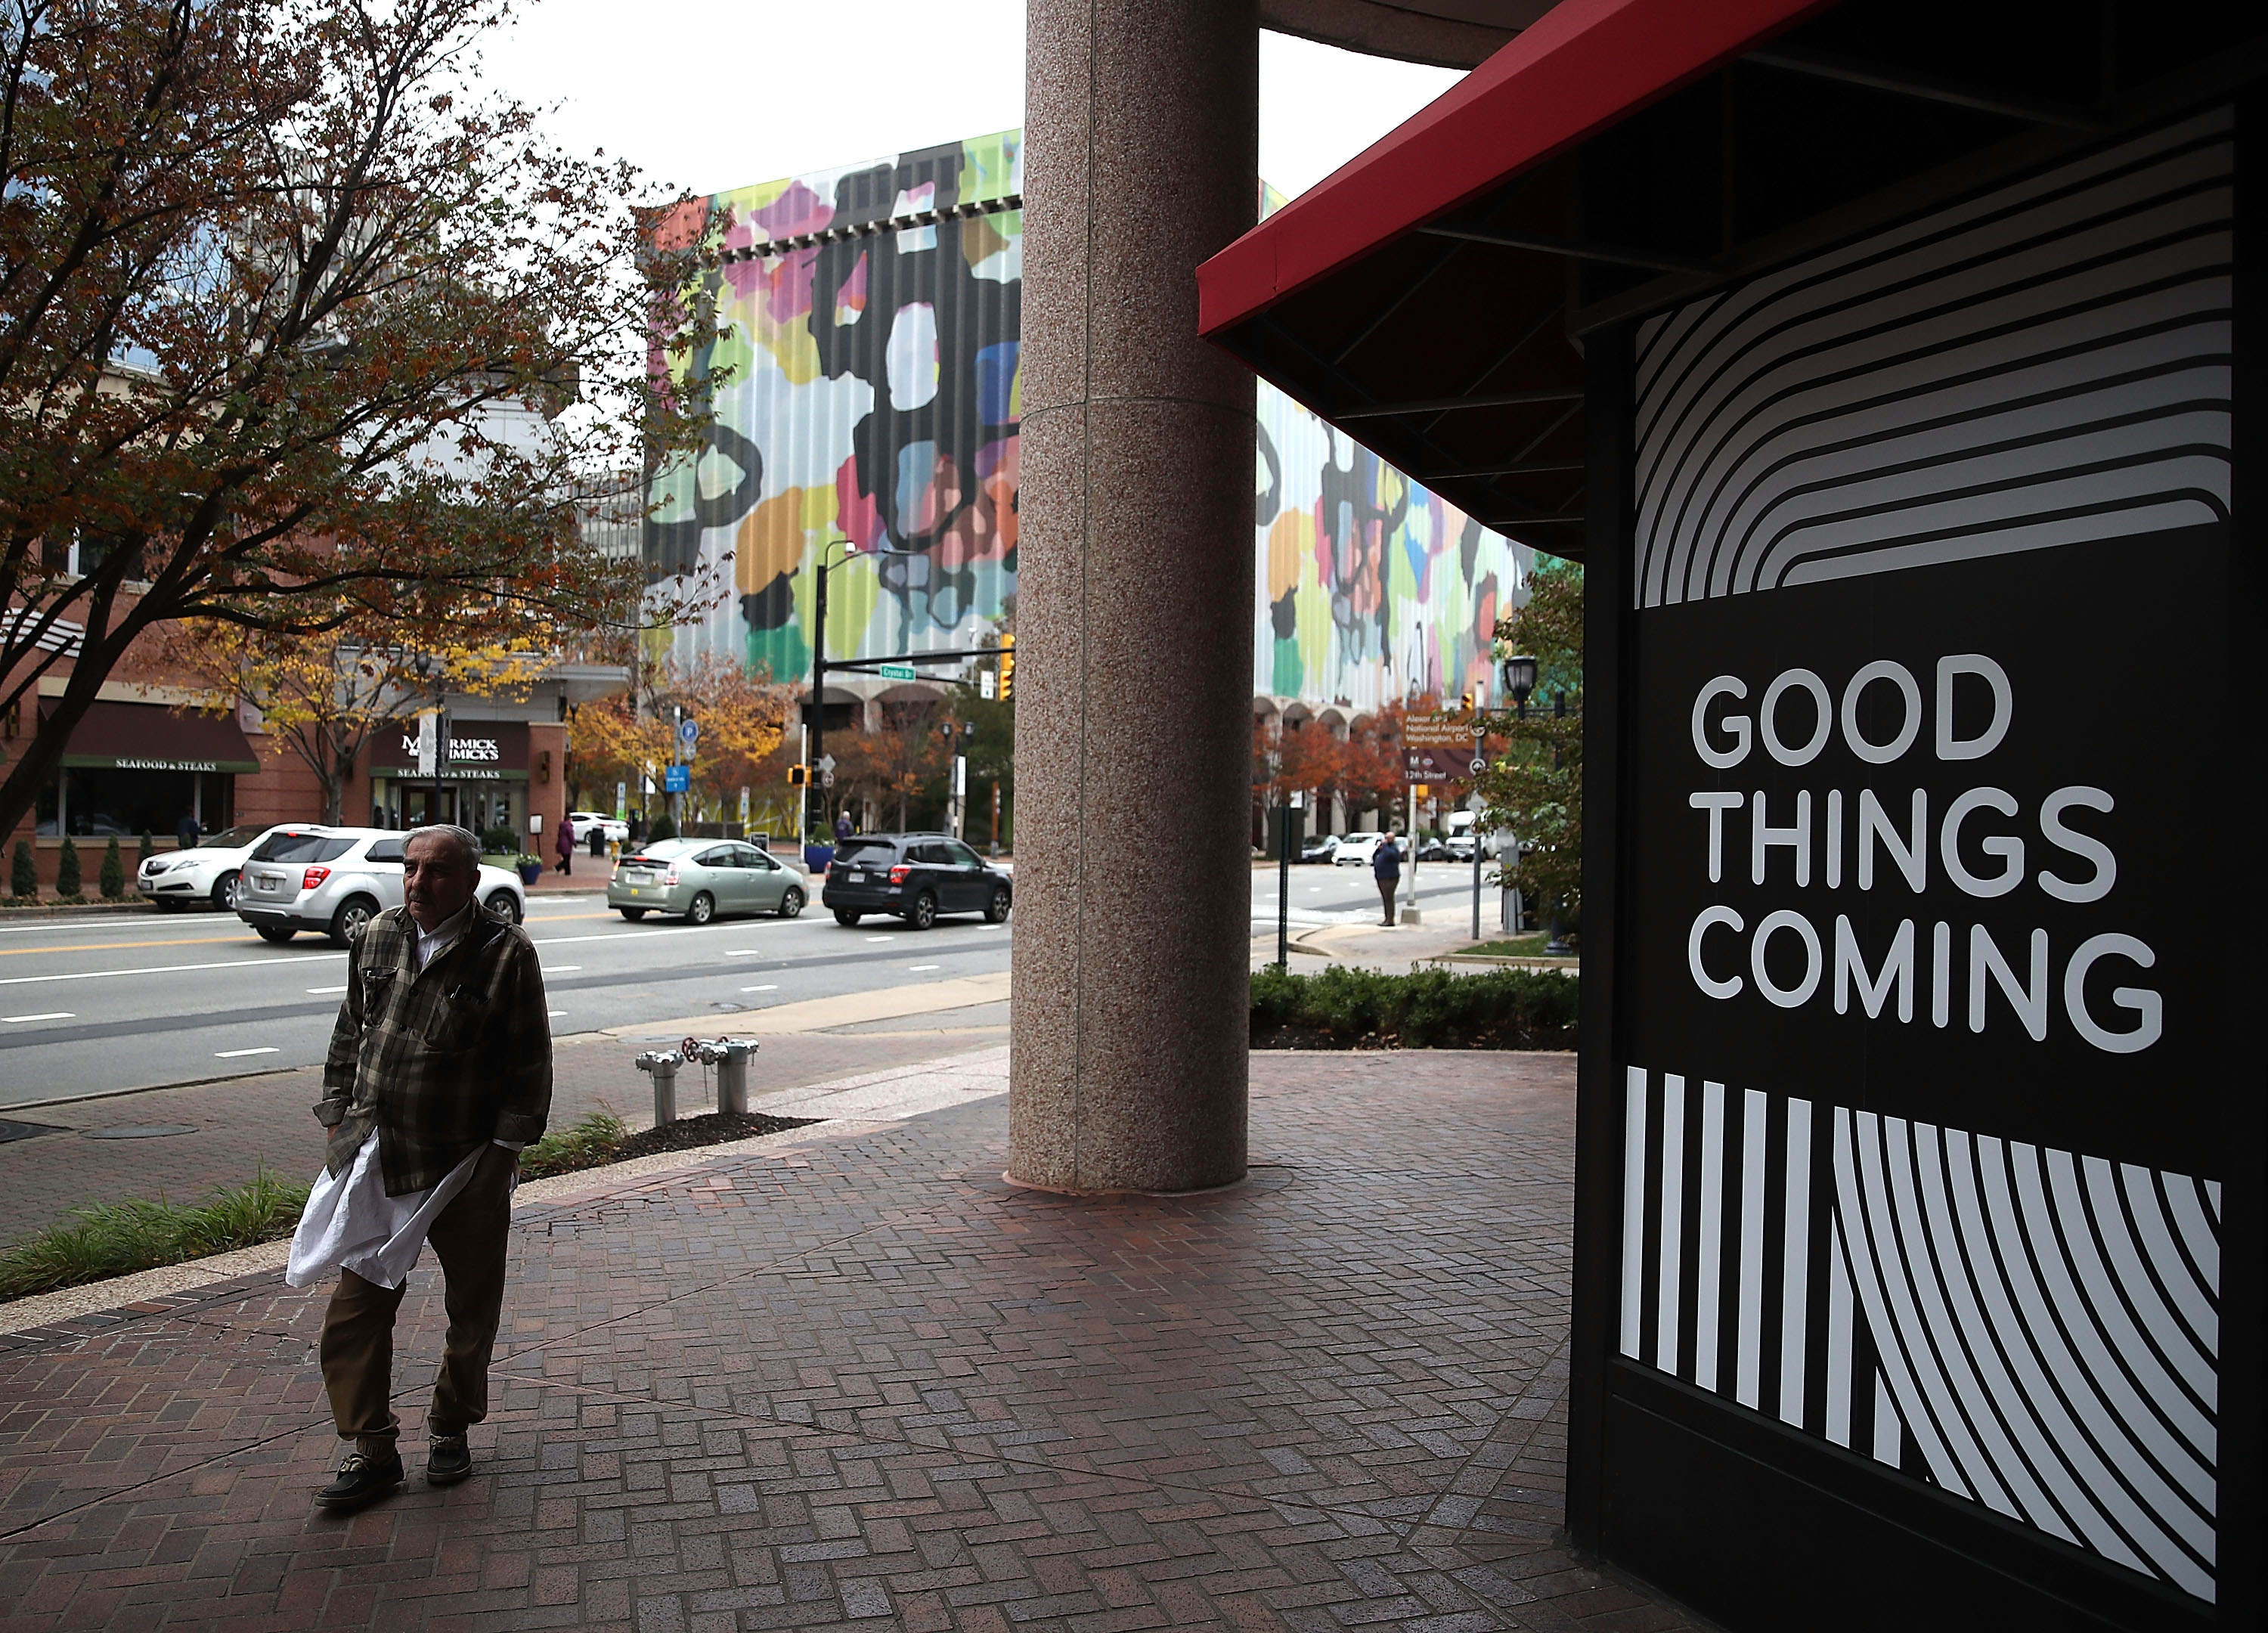 Amazon Chooses Long Island City In Queens, NYC And Crystal City In Arlington, Virginia For Their New Headquarters